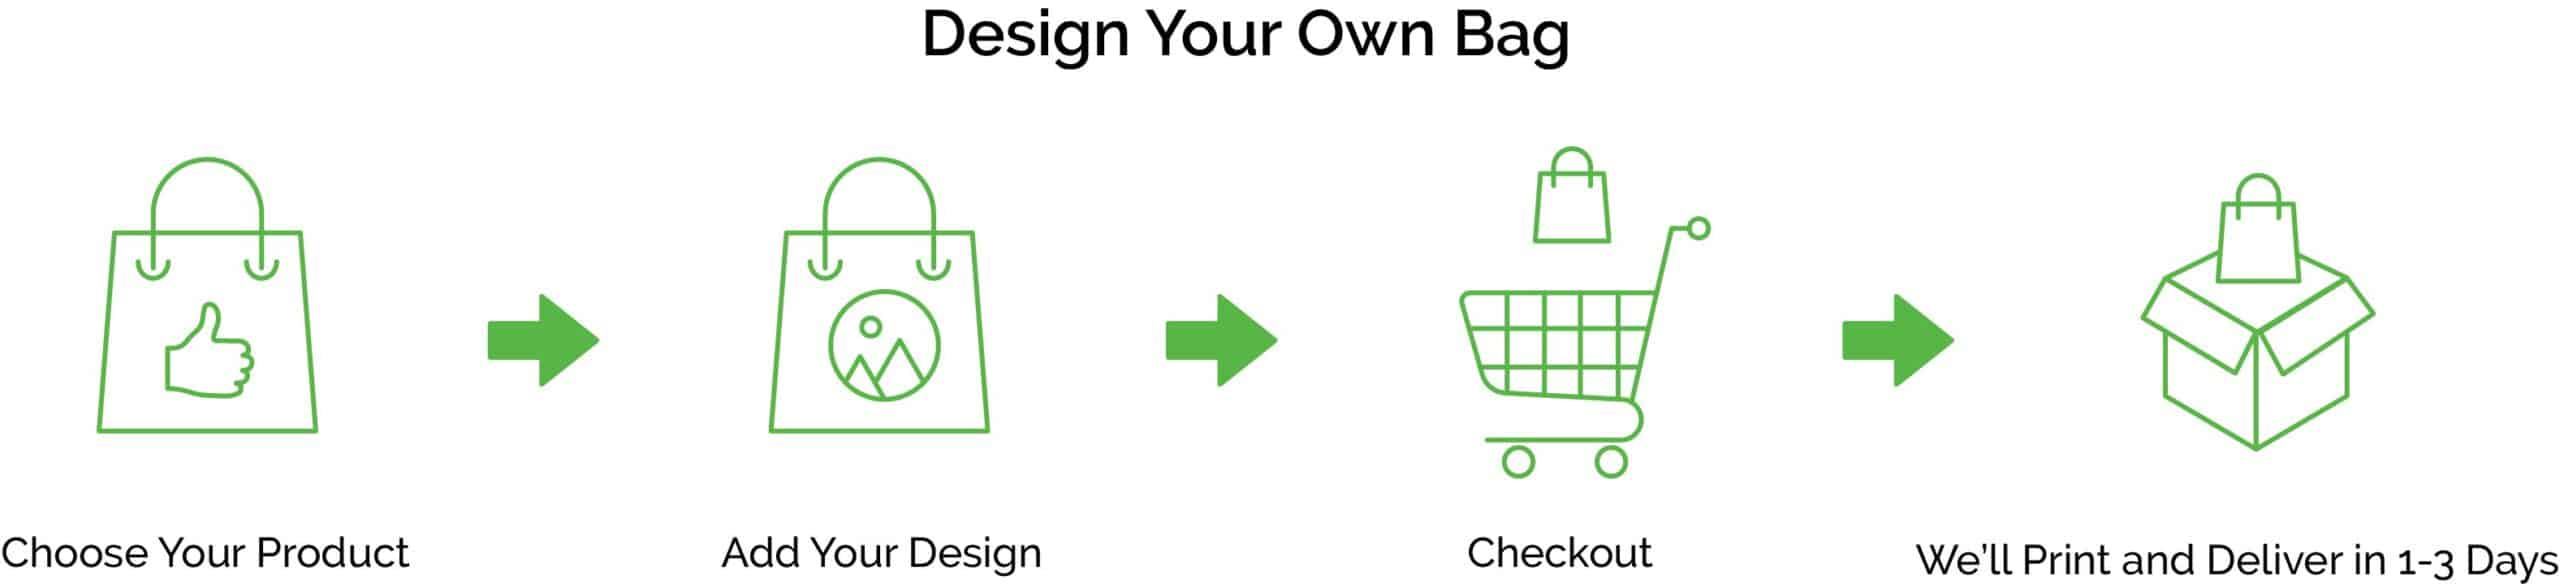 Process of designing your own bag